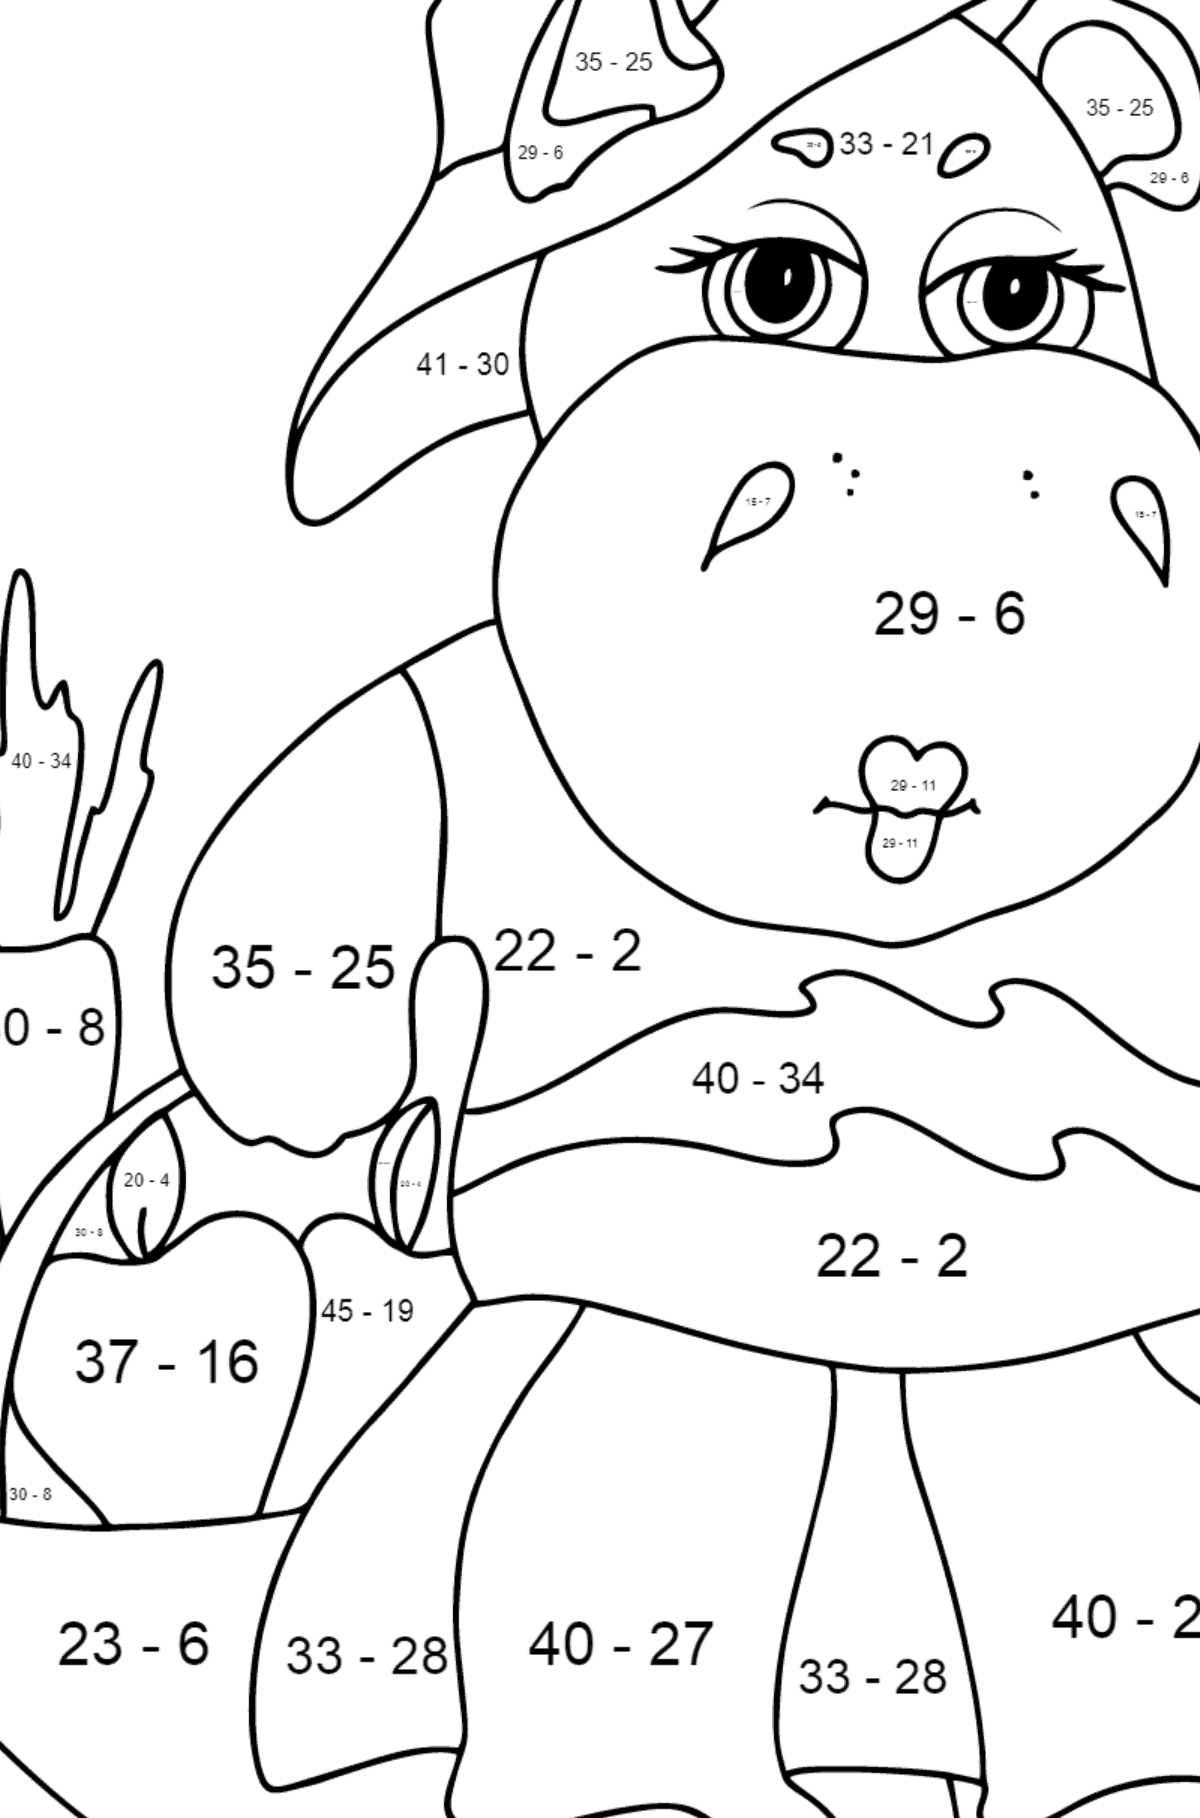 Coloring Page - A Hippo with a Crop Basket for Children  - Color by Number Substraction